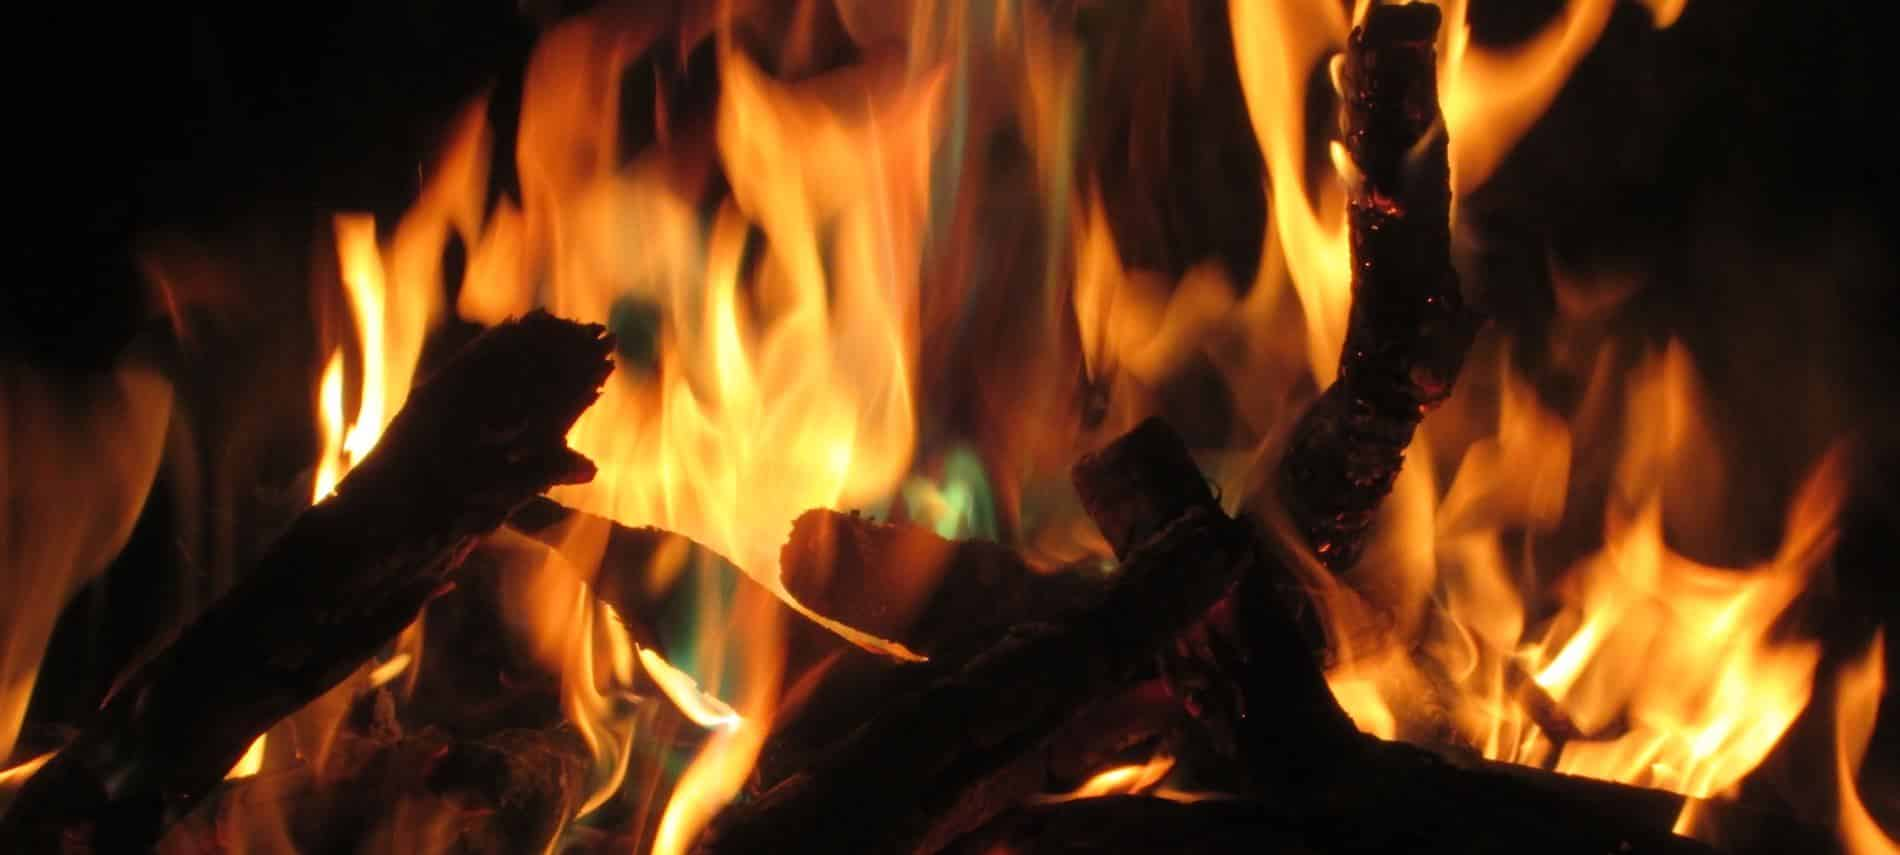 Close up view of an outdoor campfire with warm yellow and orange flames